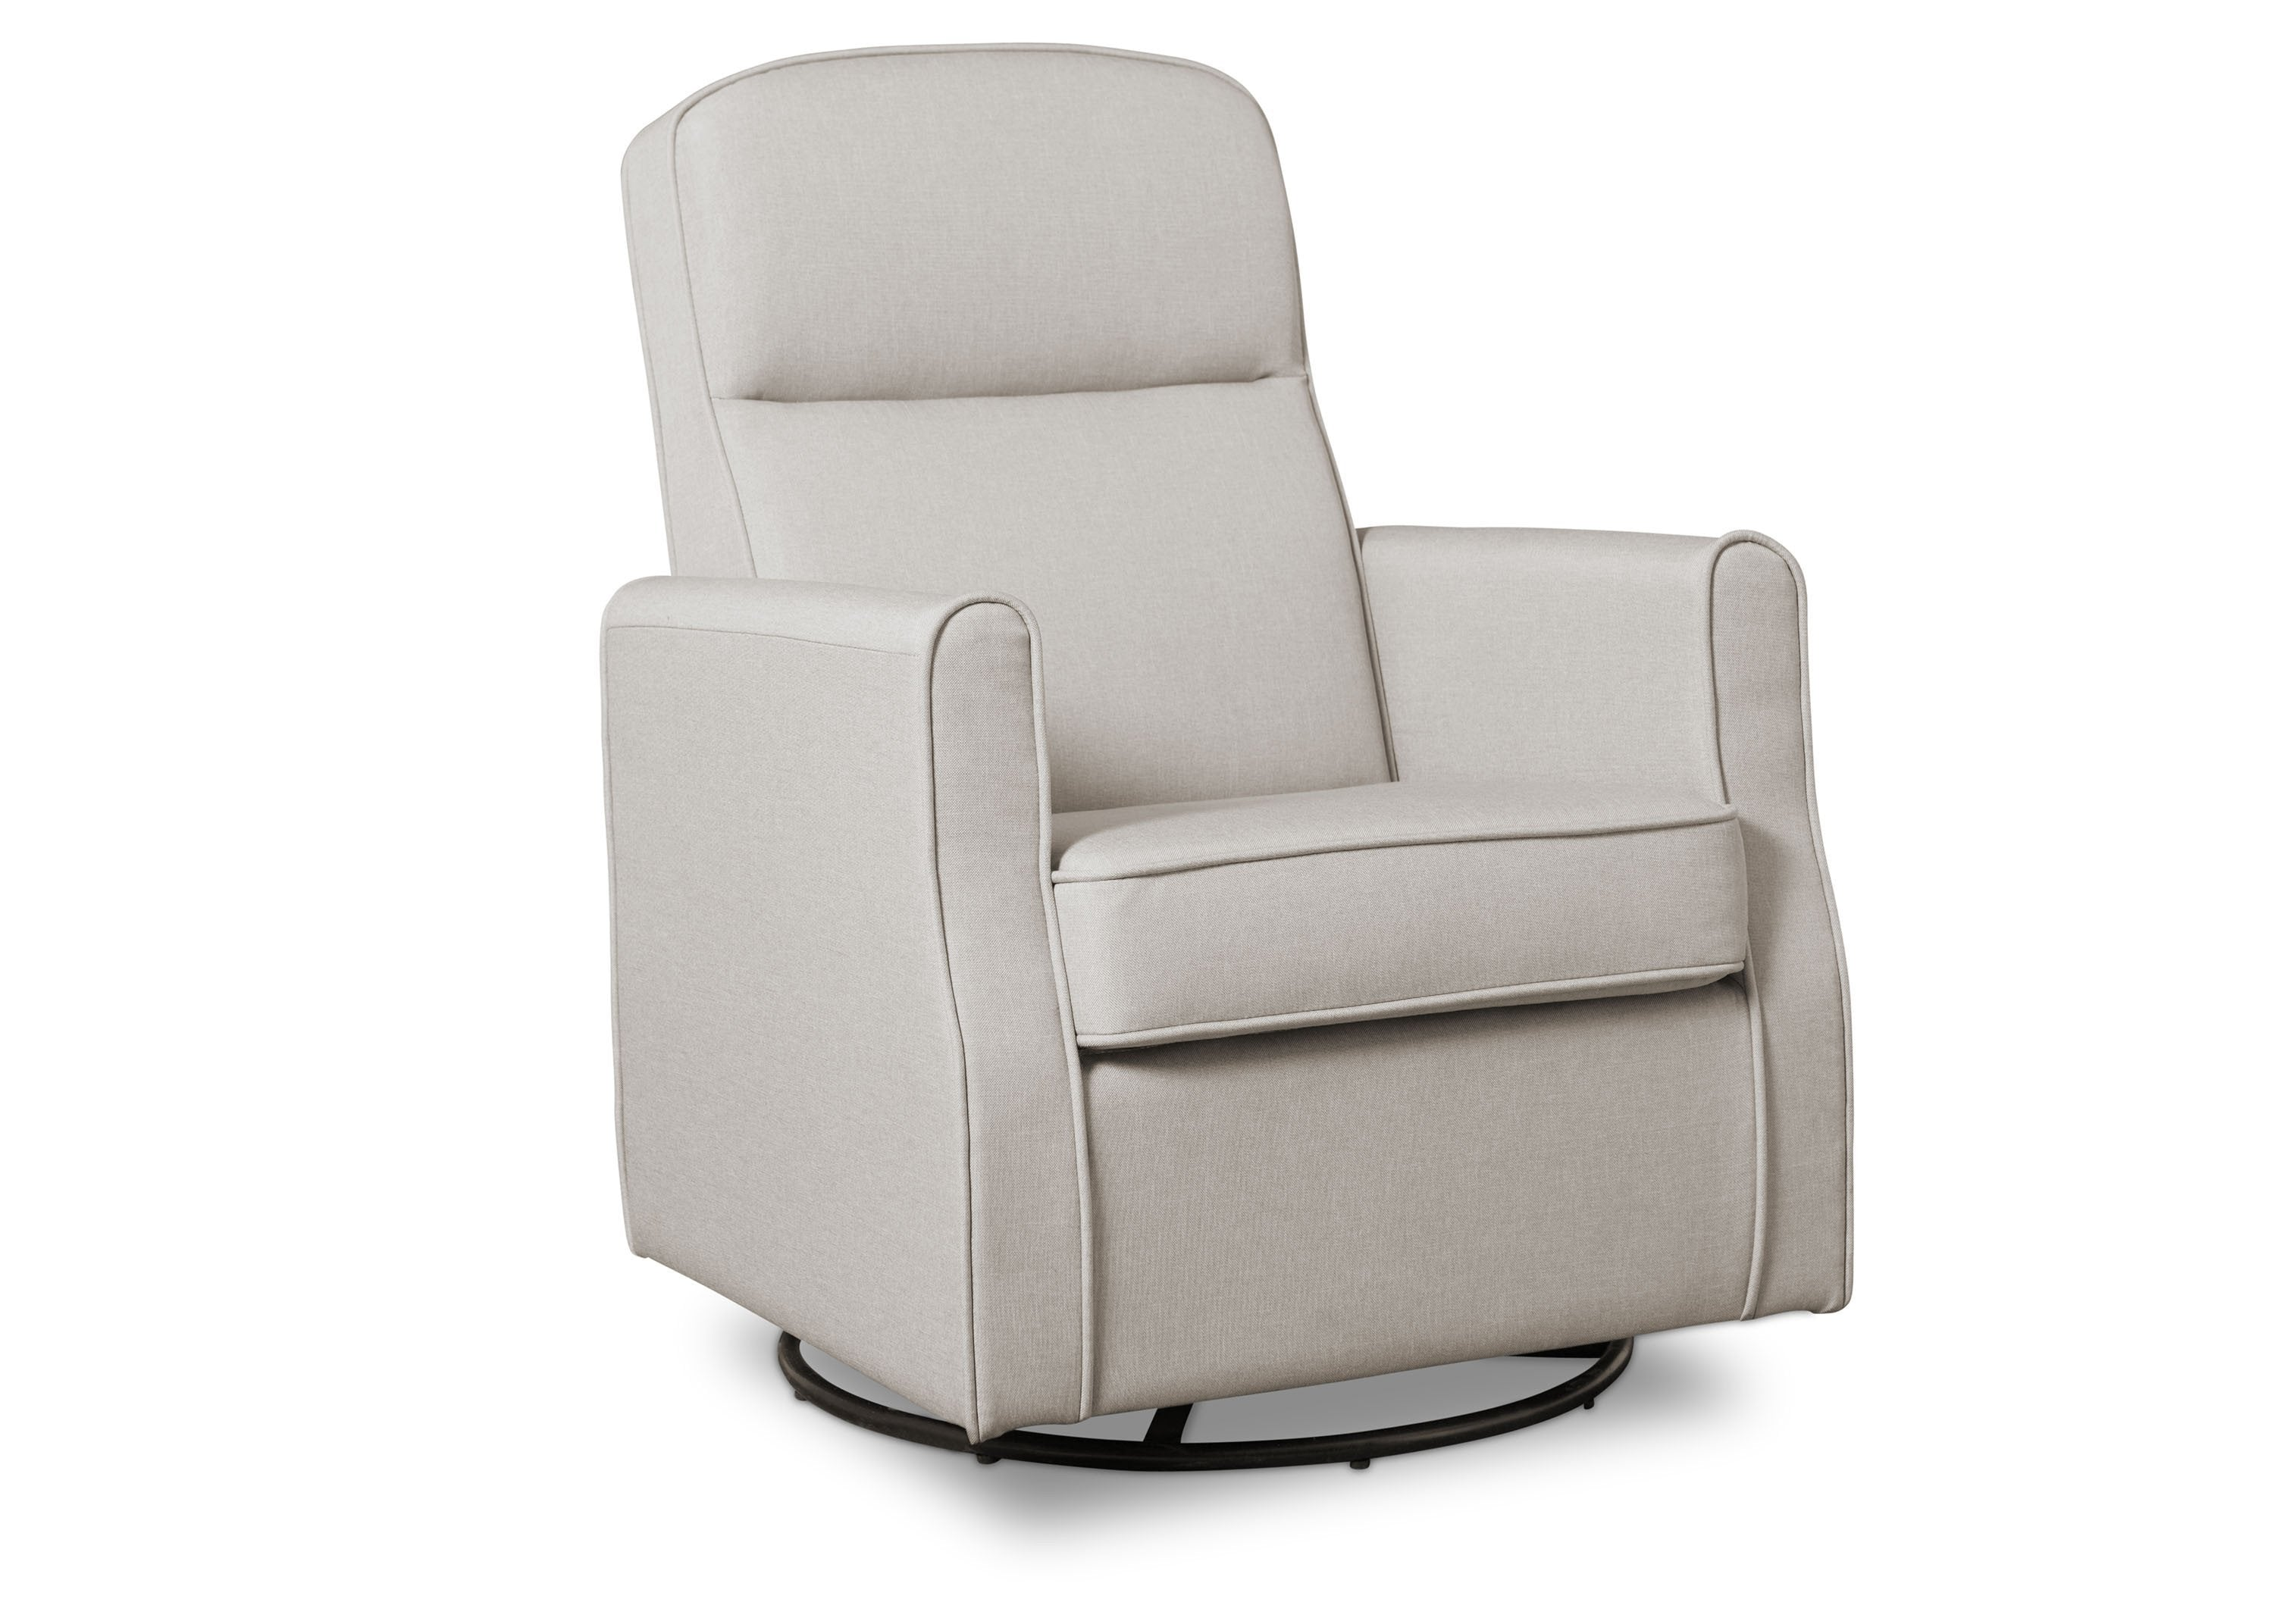 Blair Slim Nursery Glider Swivel Rocker Chair